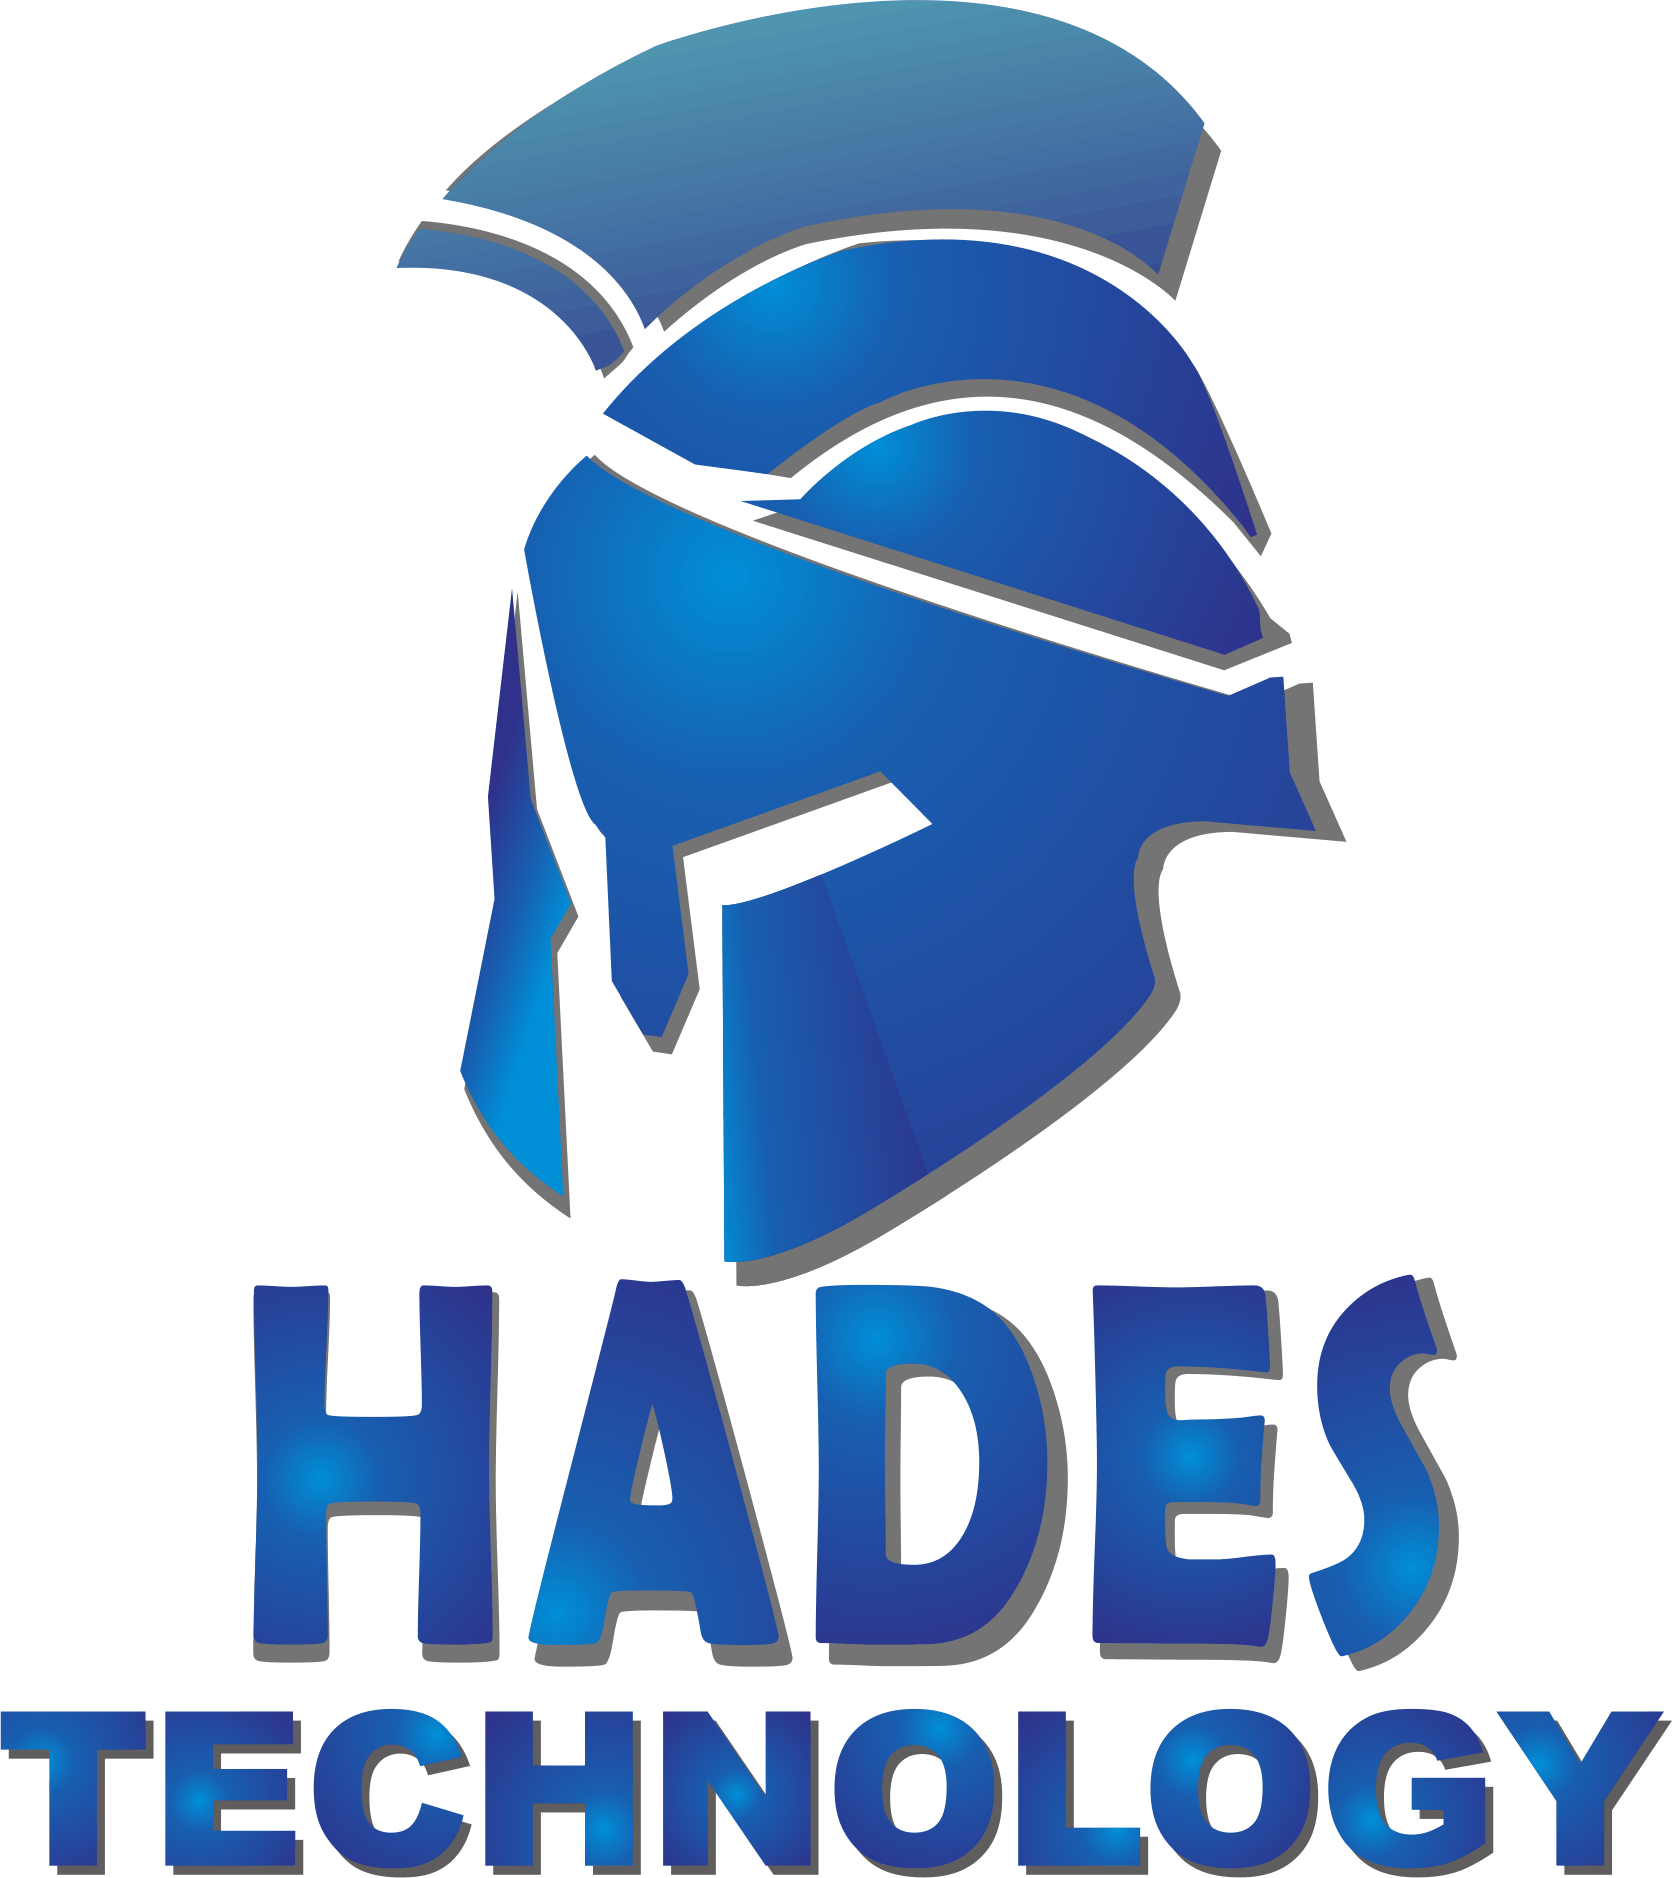 HADES TECHNOLOGY